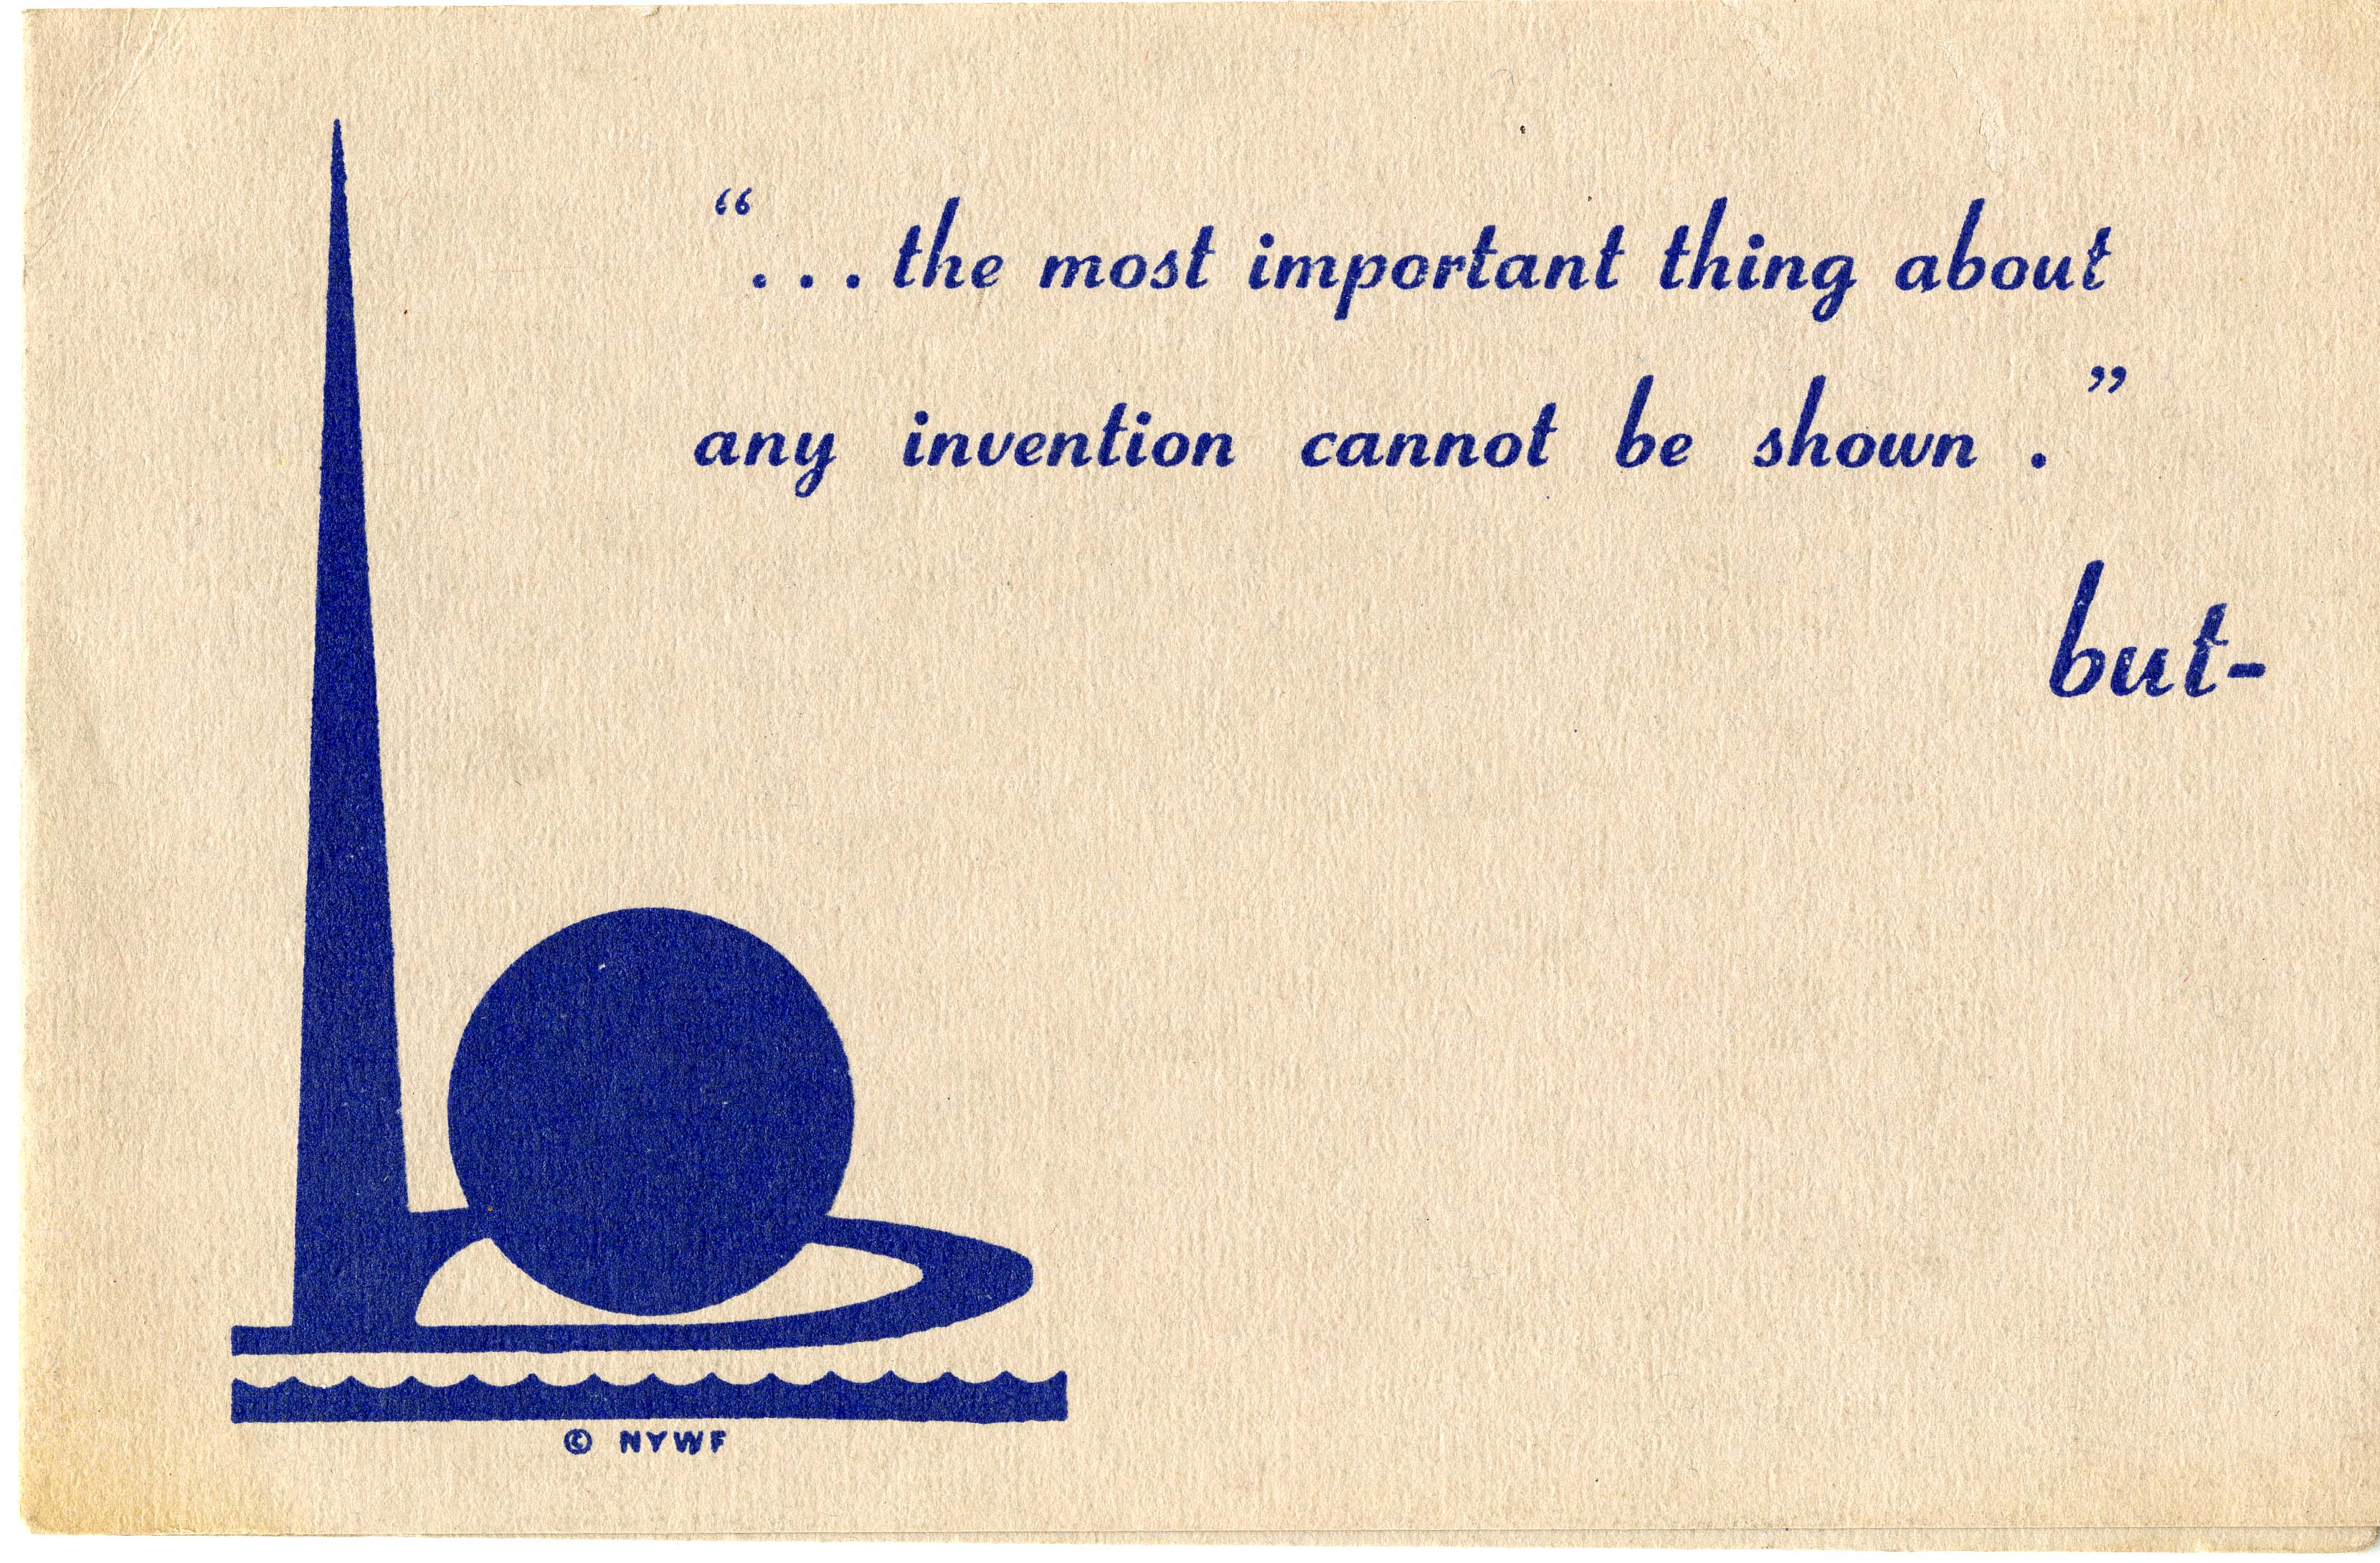 Brochure, Hall of Inventions, New York World's Fair, 1940 (AC0560-0000048)